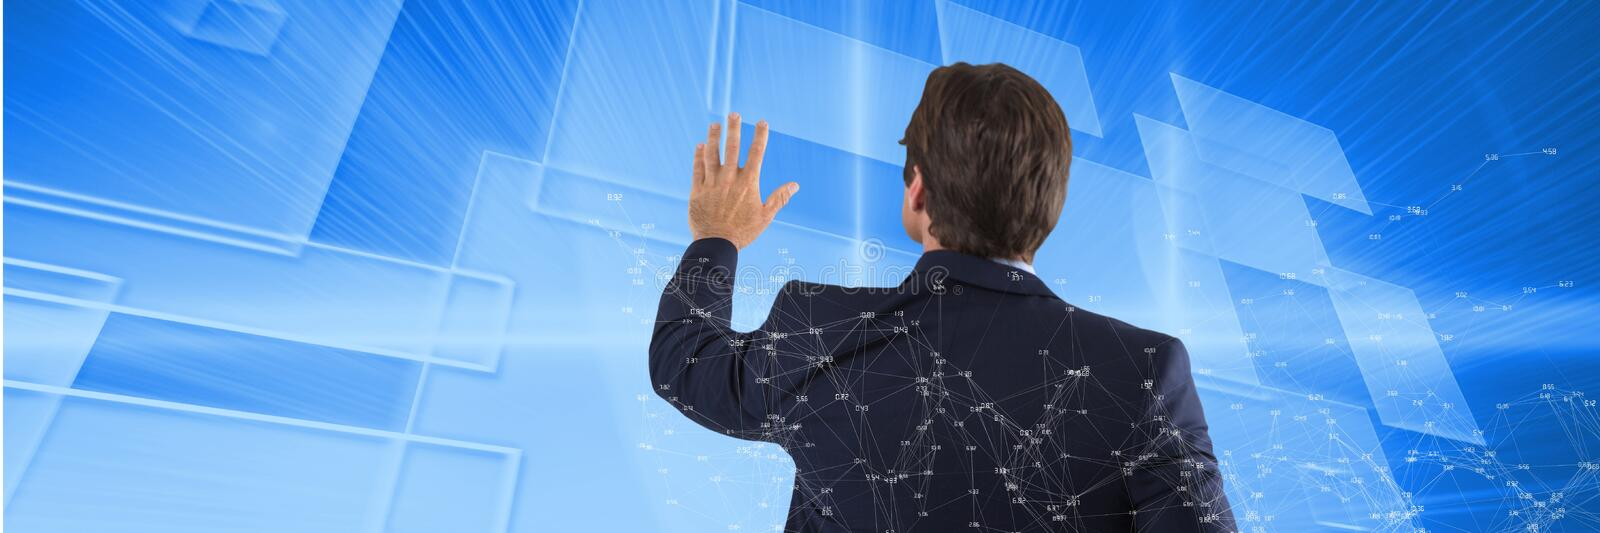 Man clicks blue pictures with connections overlay. Digital composite of Man clicks blue pictures with connections overlay royalty free illustration